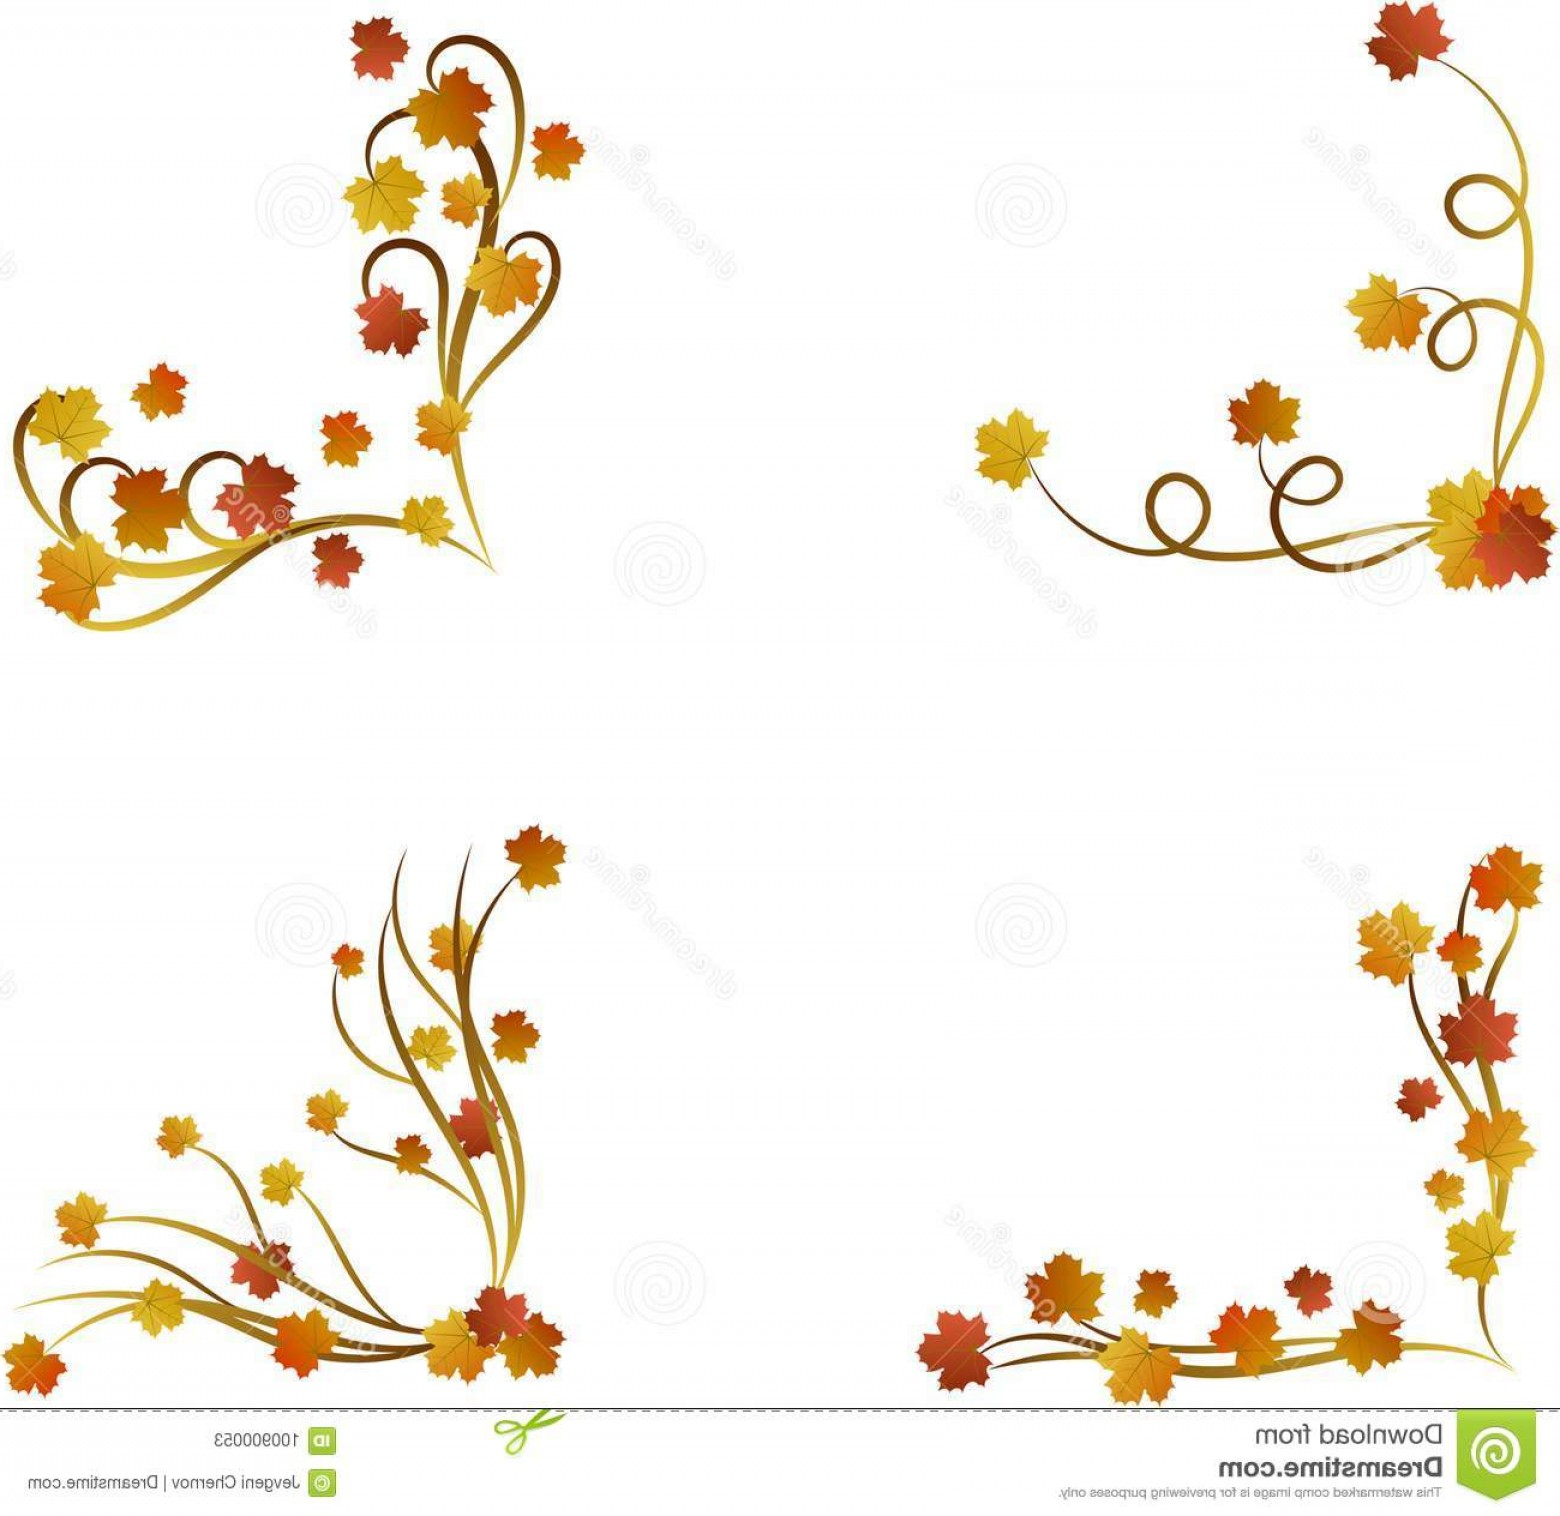 Autumn Maple Leaves Border Set Colorful Autumnal Page Borders.